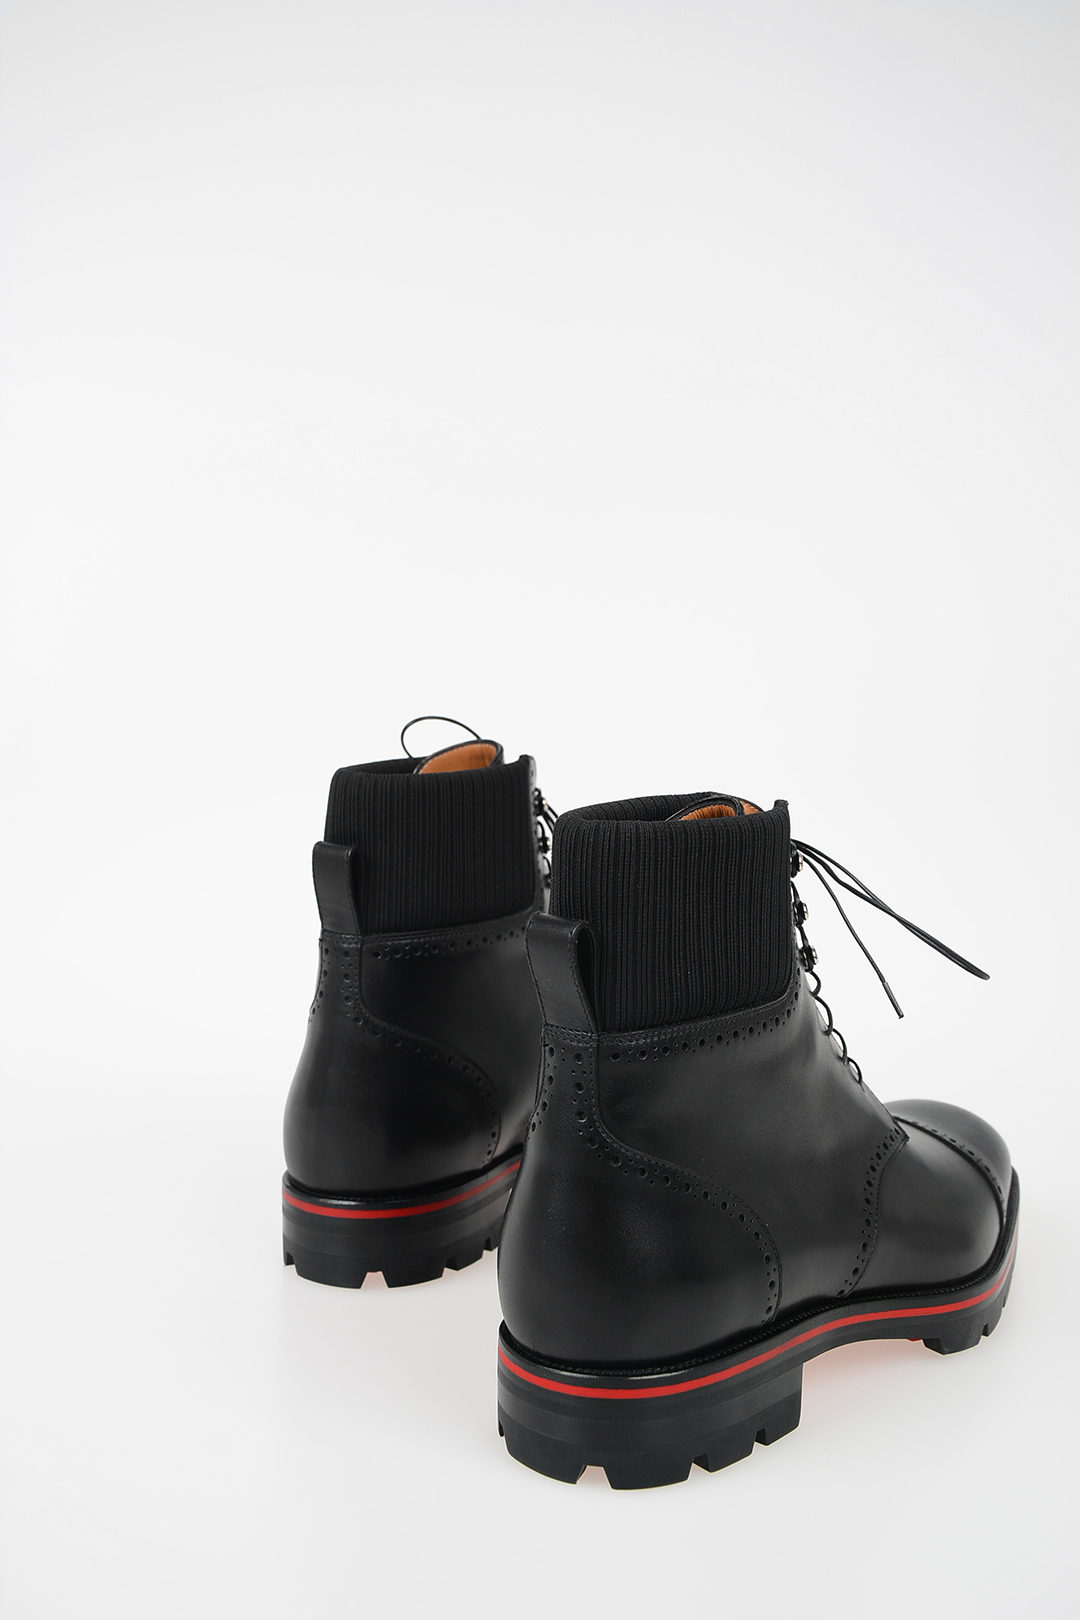 check out e2b59 99f1d Leather Ankle Boots